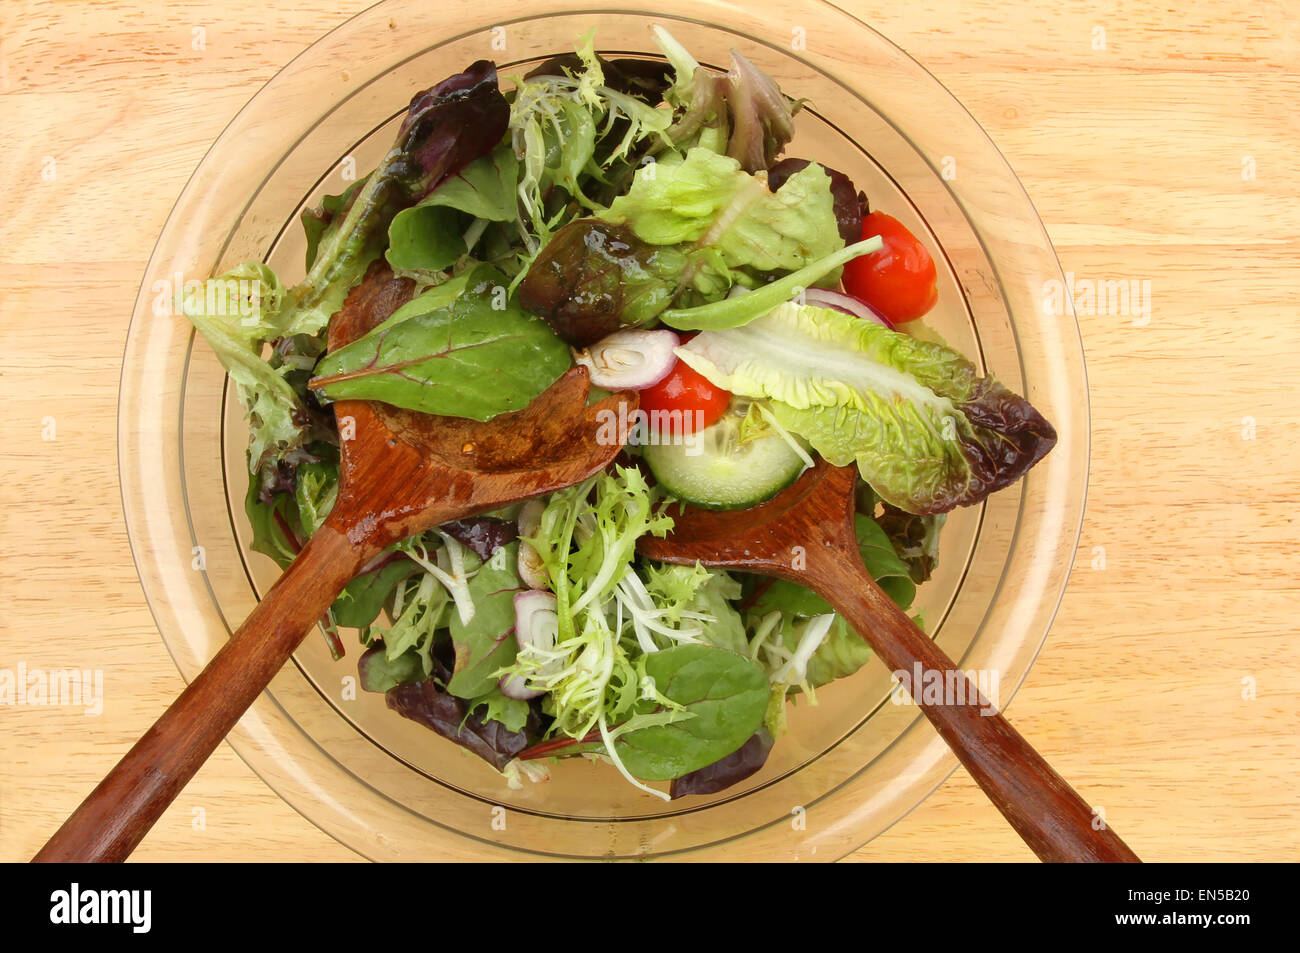 Mixed salad in a bowl with wooden salad servers - Stock Image